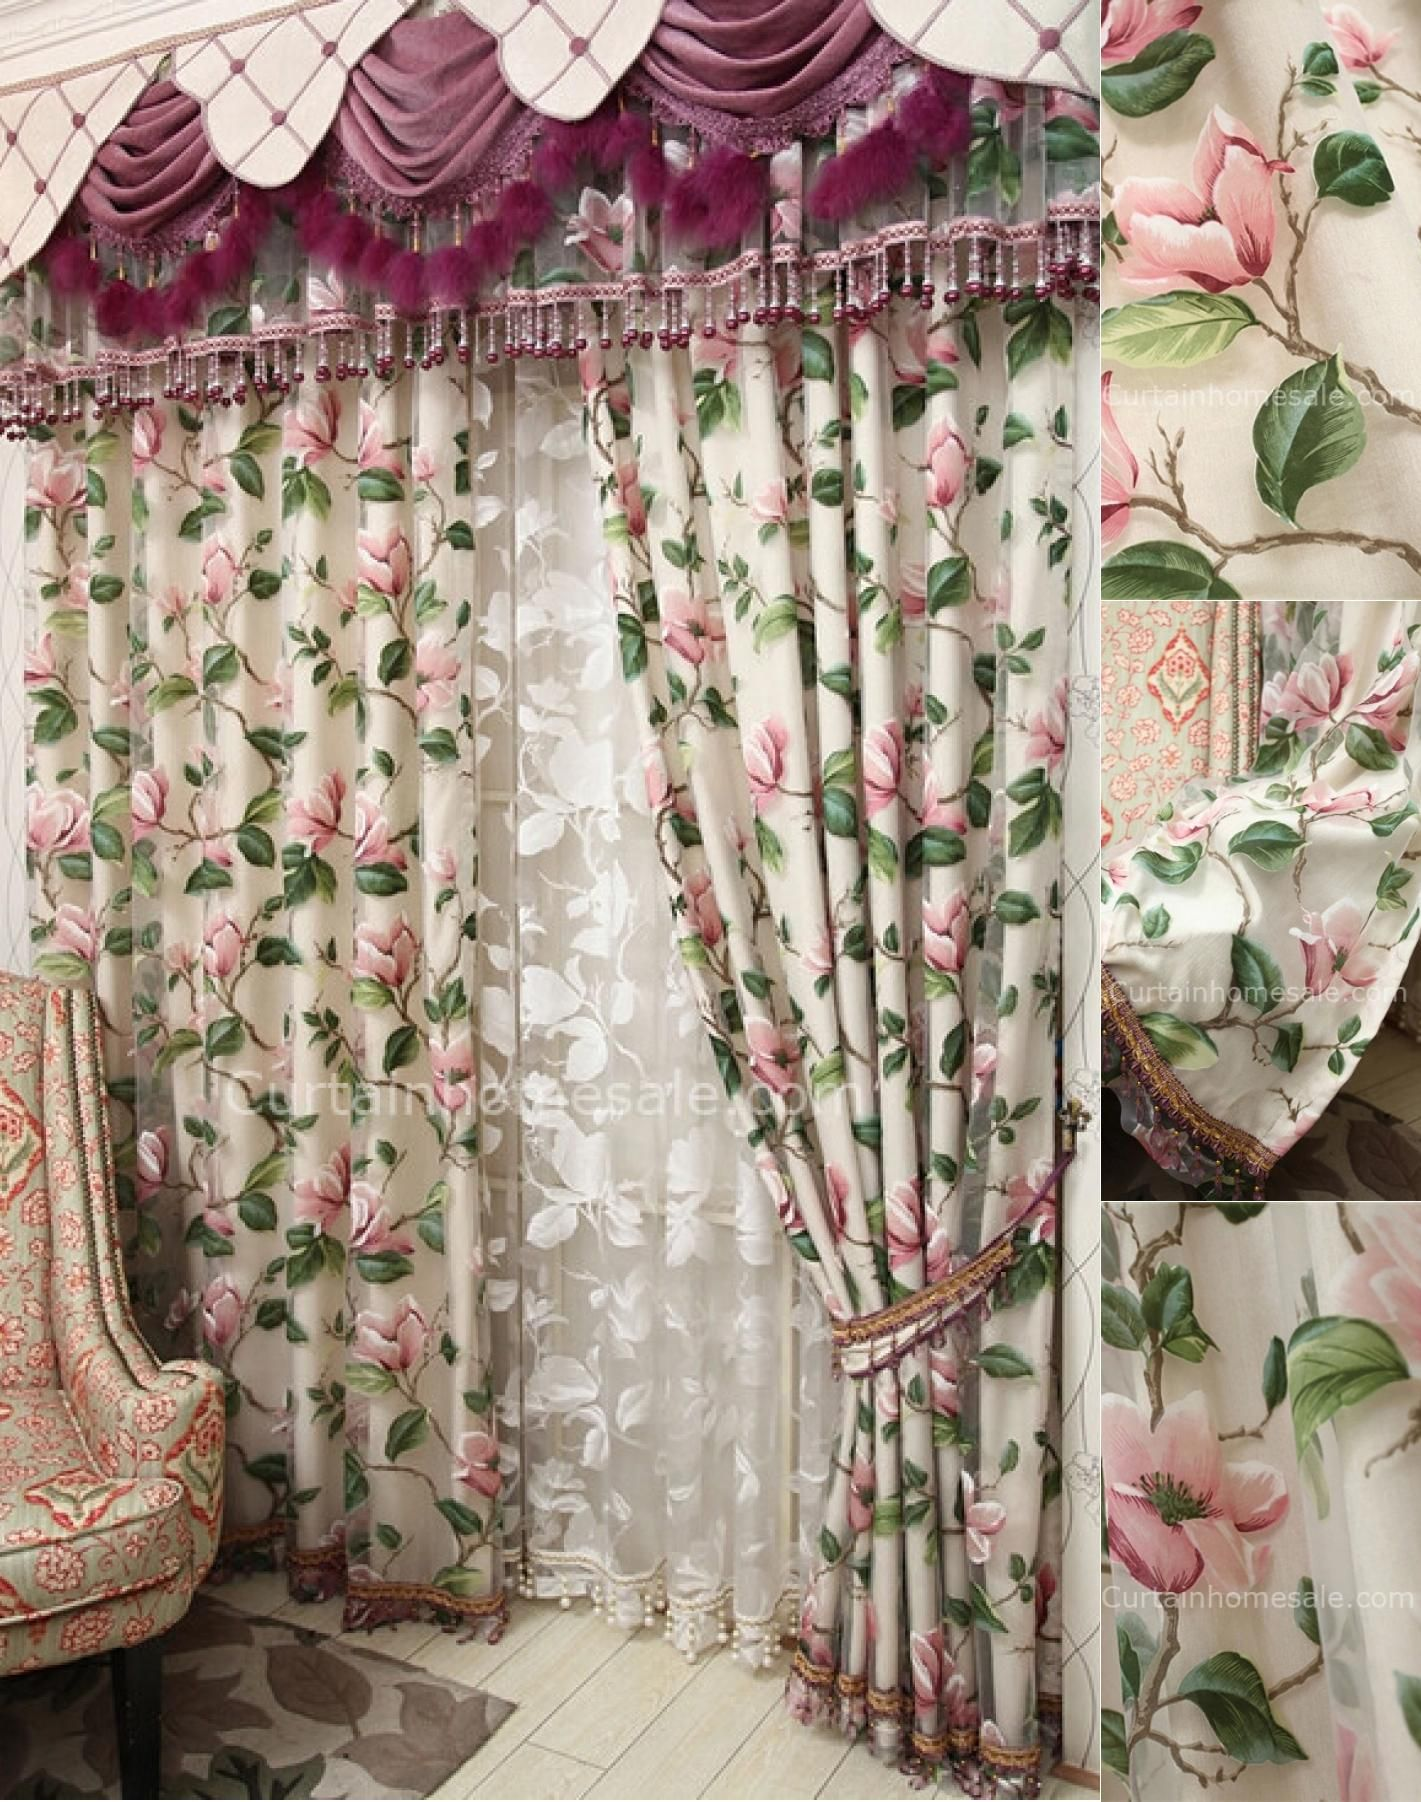 Beige Chenille And Pink Flower Pattern Shabby Chic Curtains For Princess Bedroom No Include Valance Shabby Chic Curtains Shabby Chic Room Shabby Chic Interiors